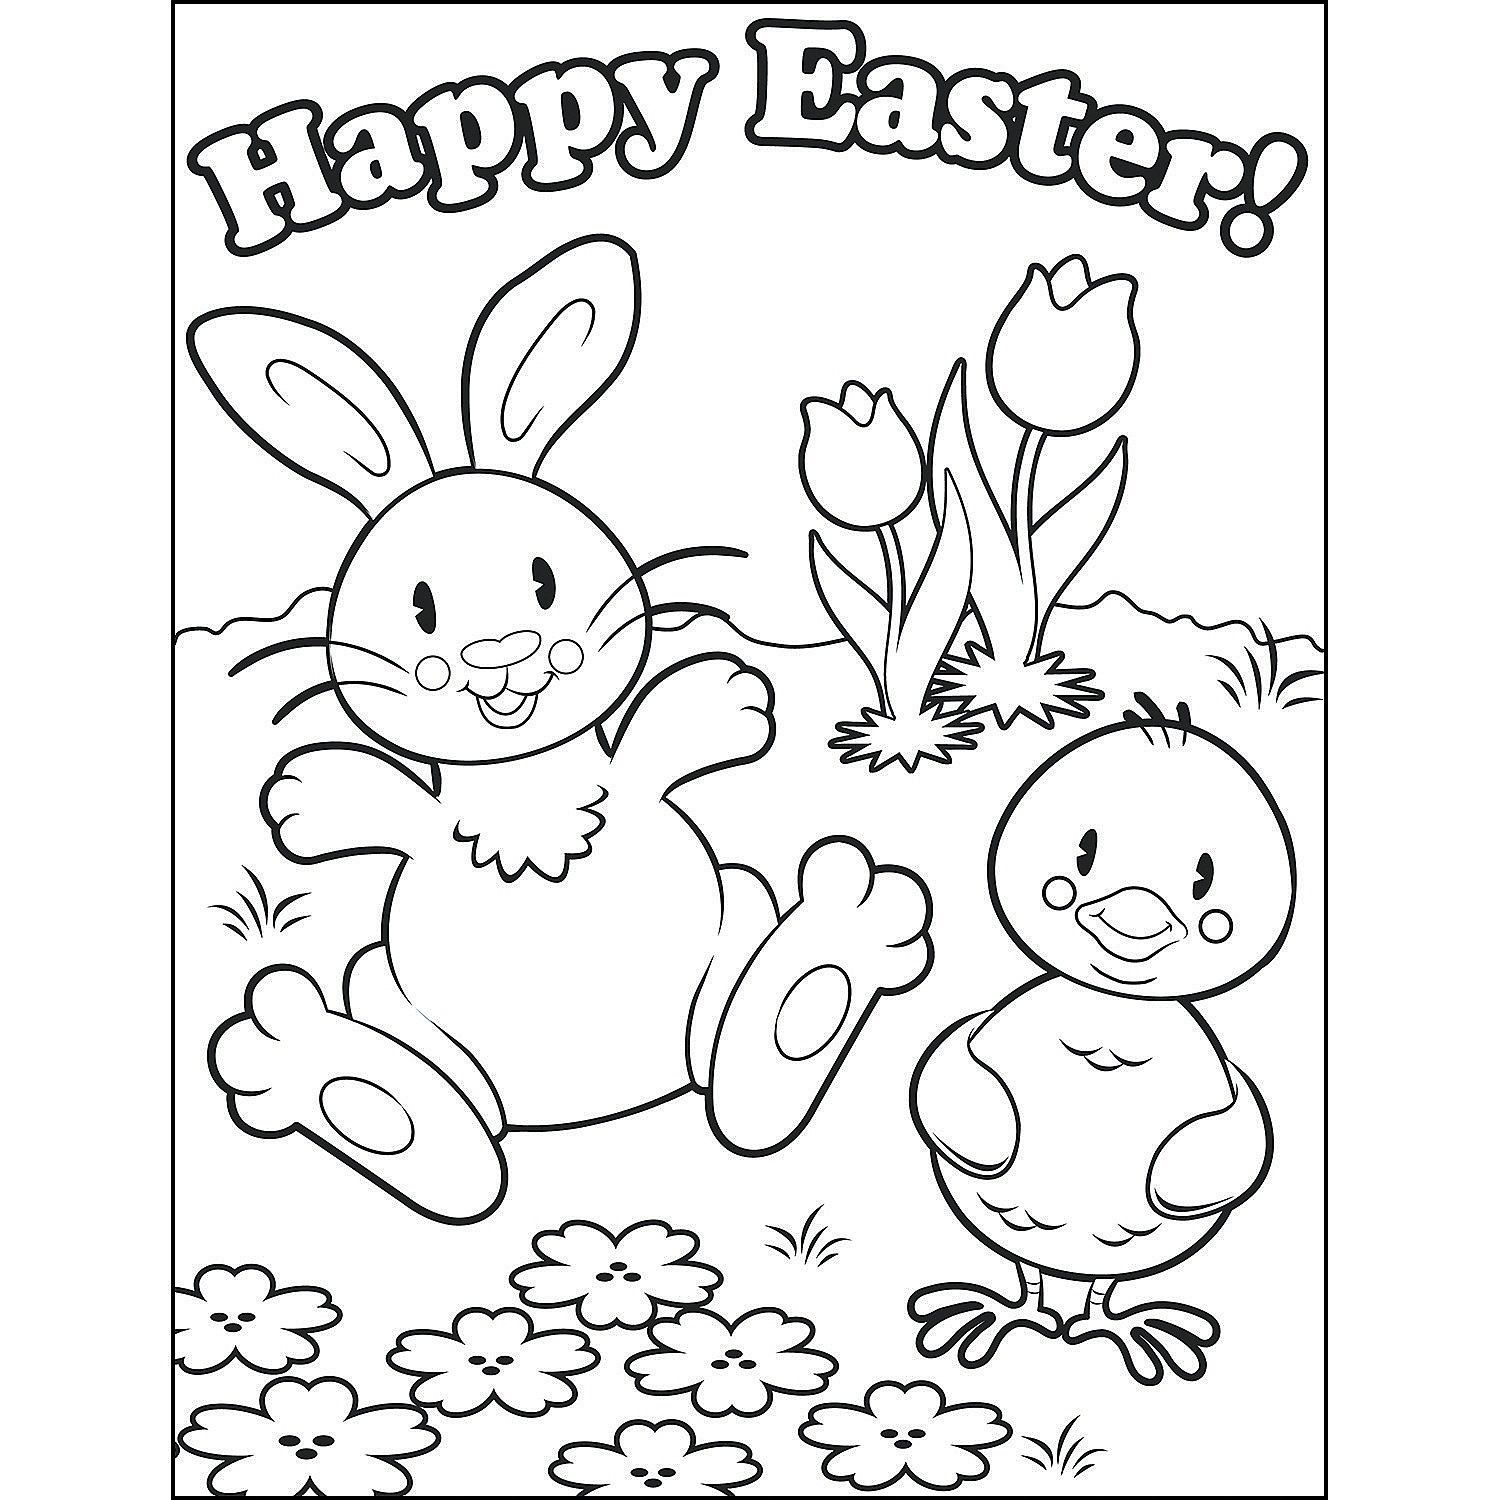 Happy Easter Coloring Pages Images Easter Easter